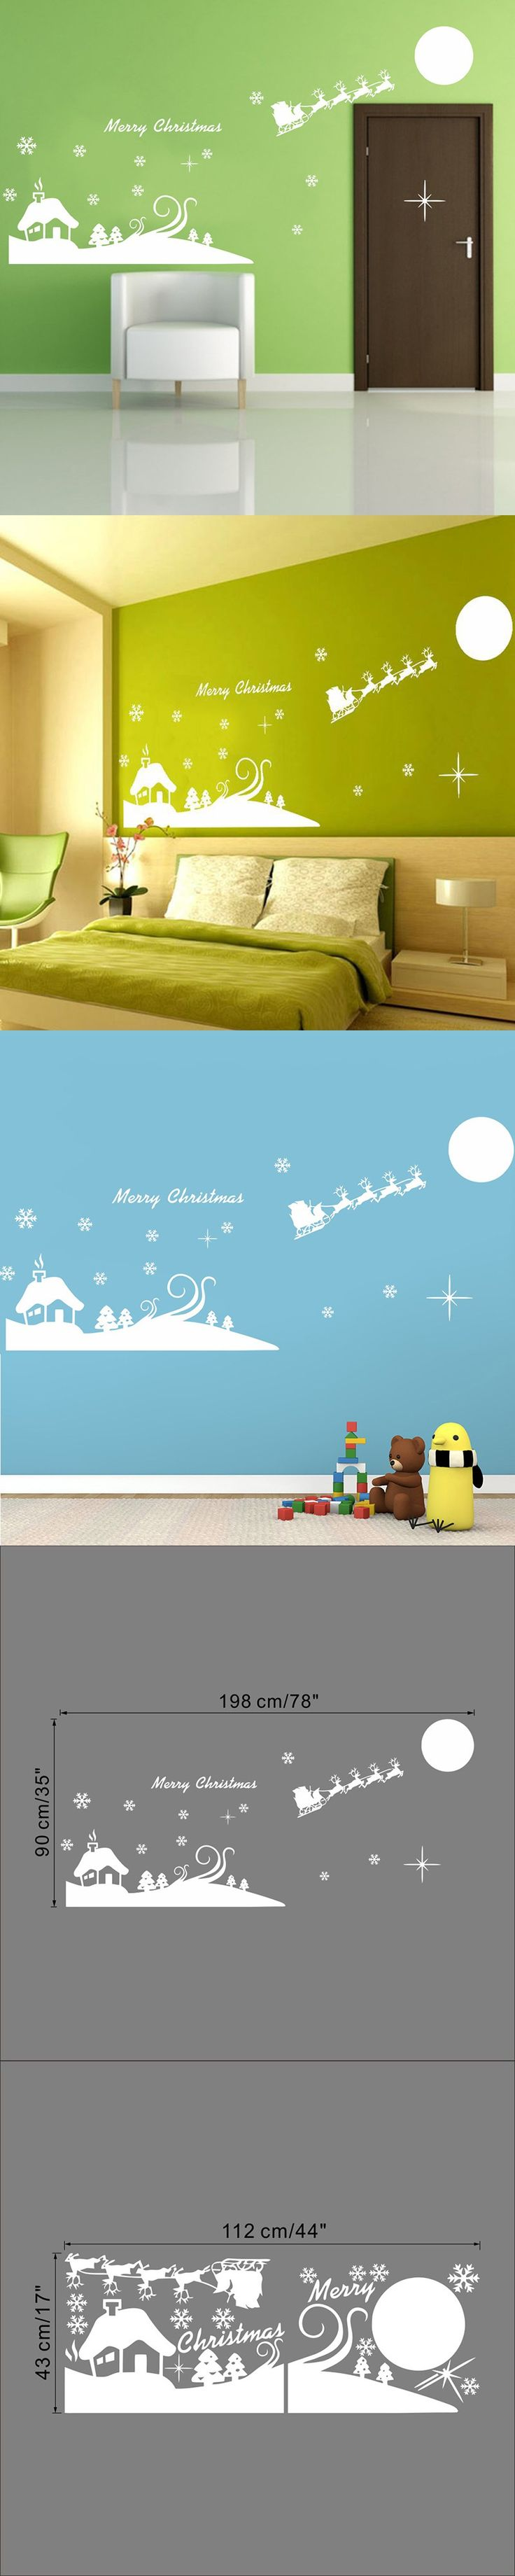 best 25 wall stickers for kids ideas on pinterest army room 198 90cm merry christmas vinyl deer wall stickers for kids room glass door window stickers home decor bedroom decals posters 51